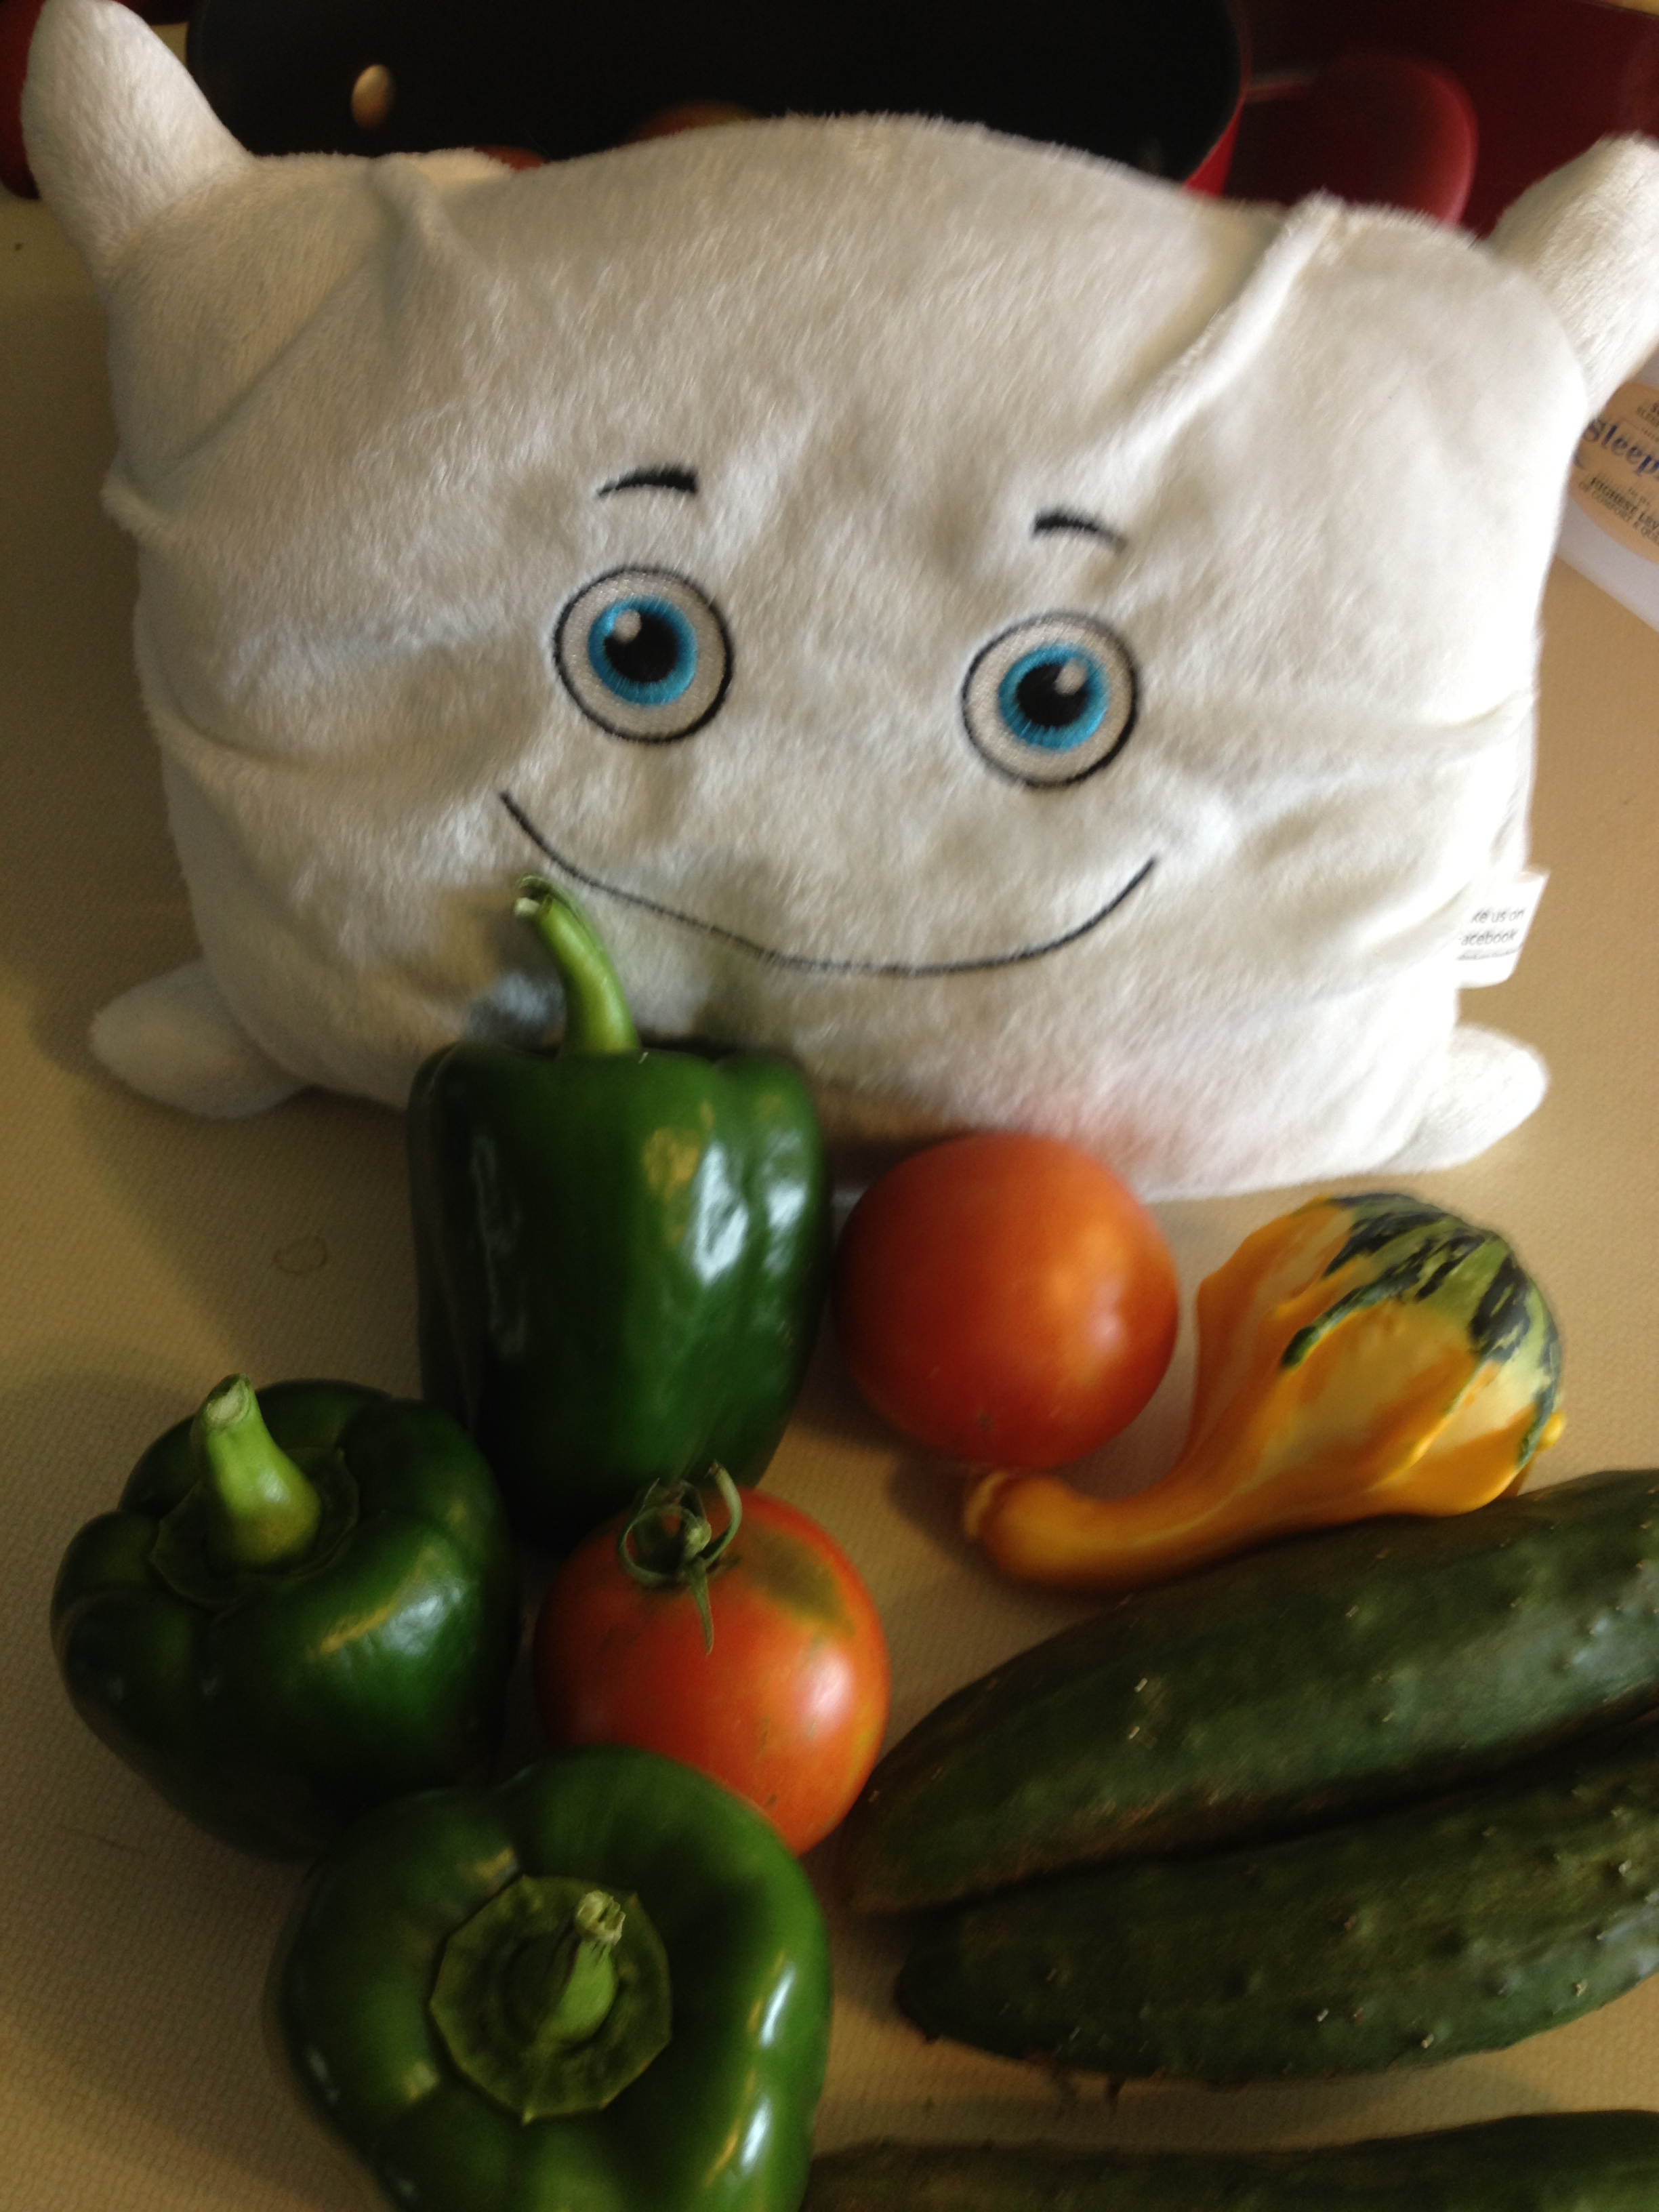 Fred Pillow gathers veggies from the garden